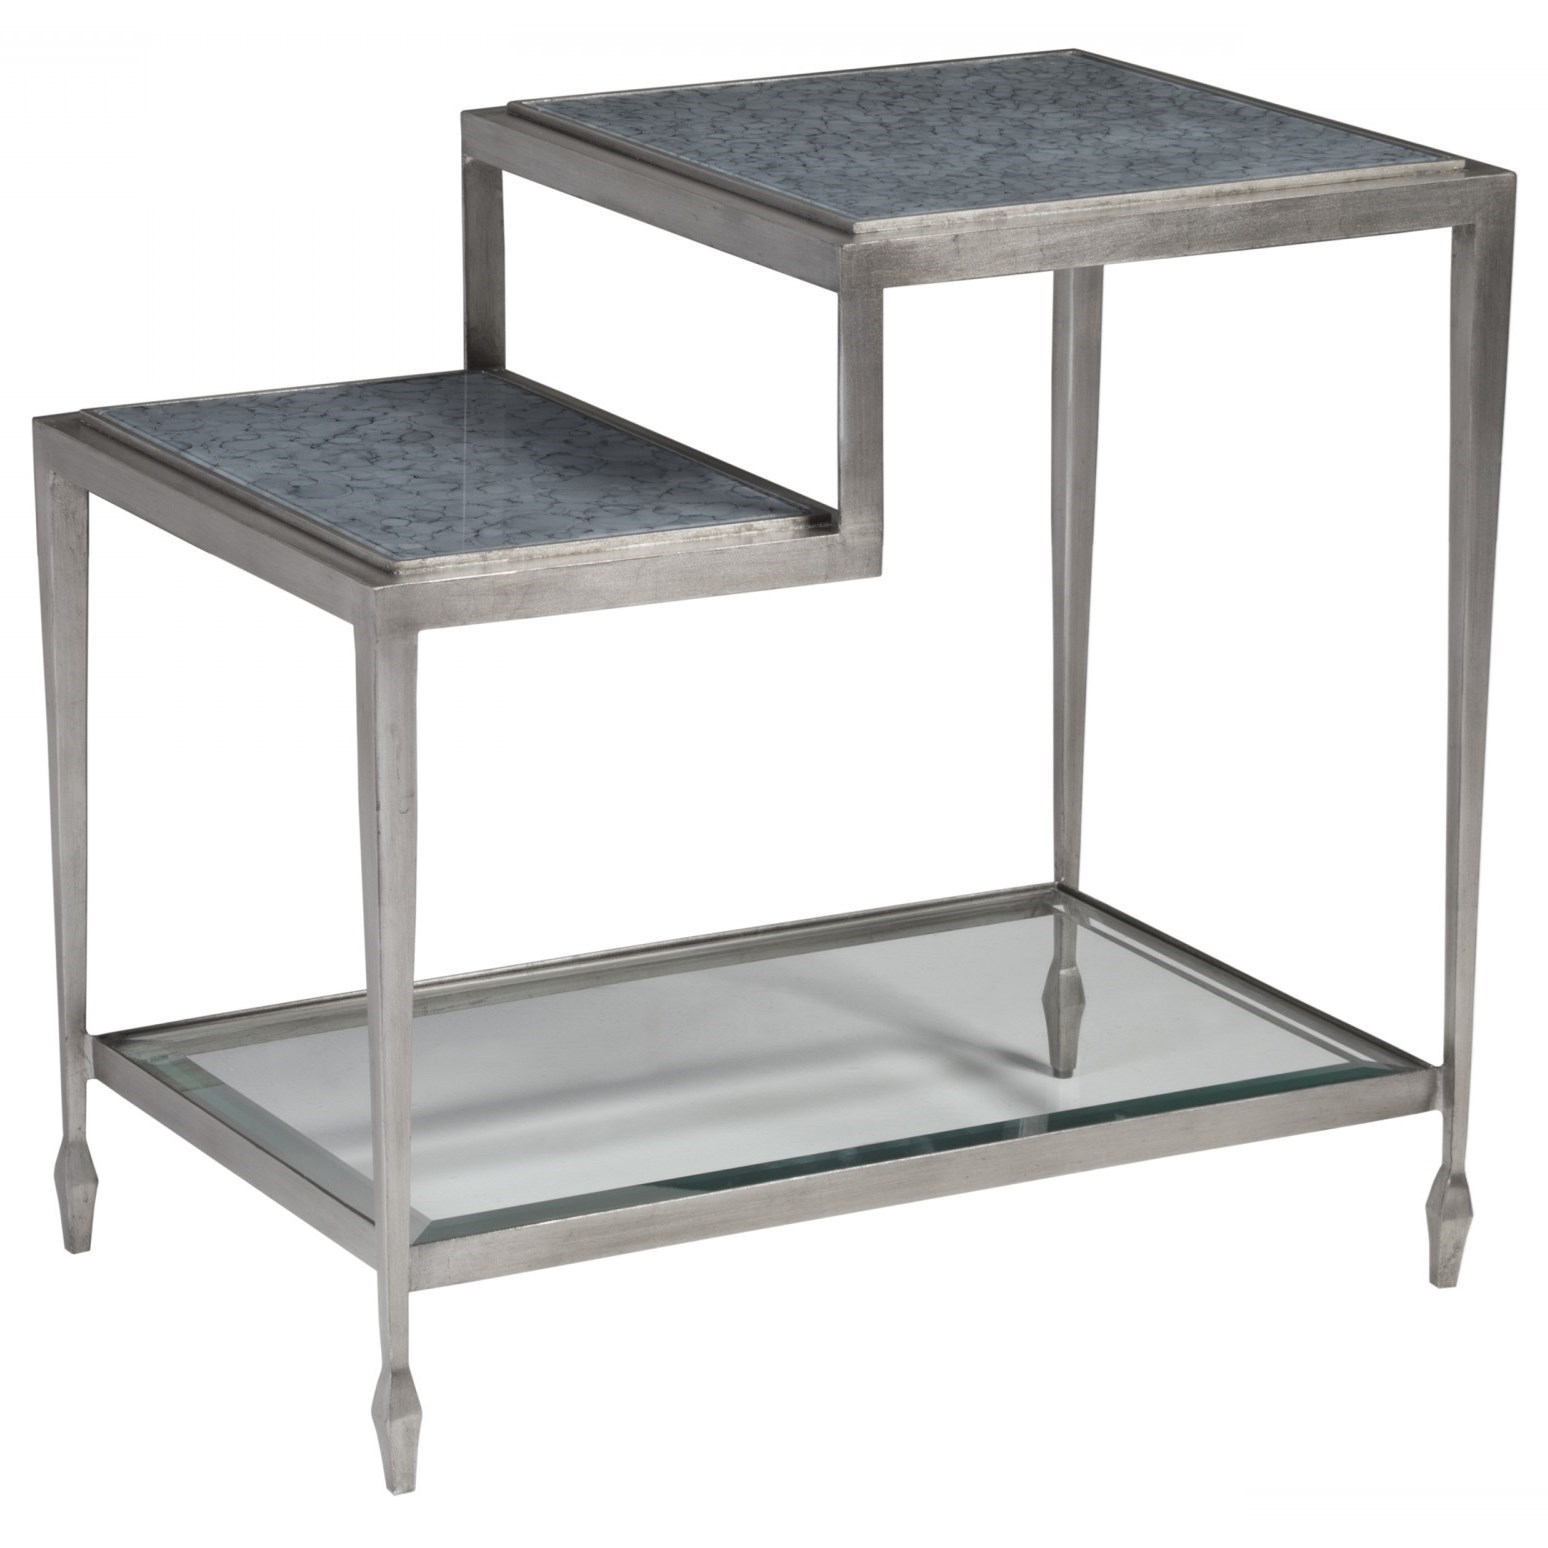 Sashay End Table by Artistica at Baer's Furniture